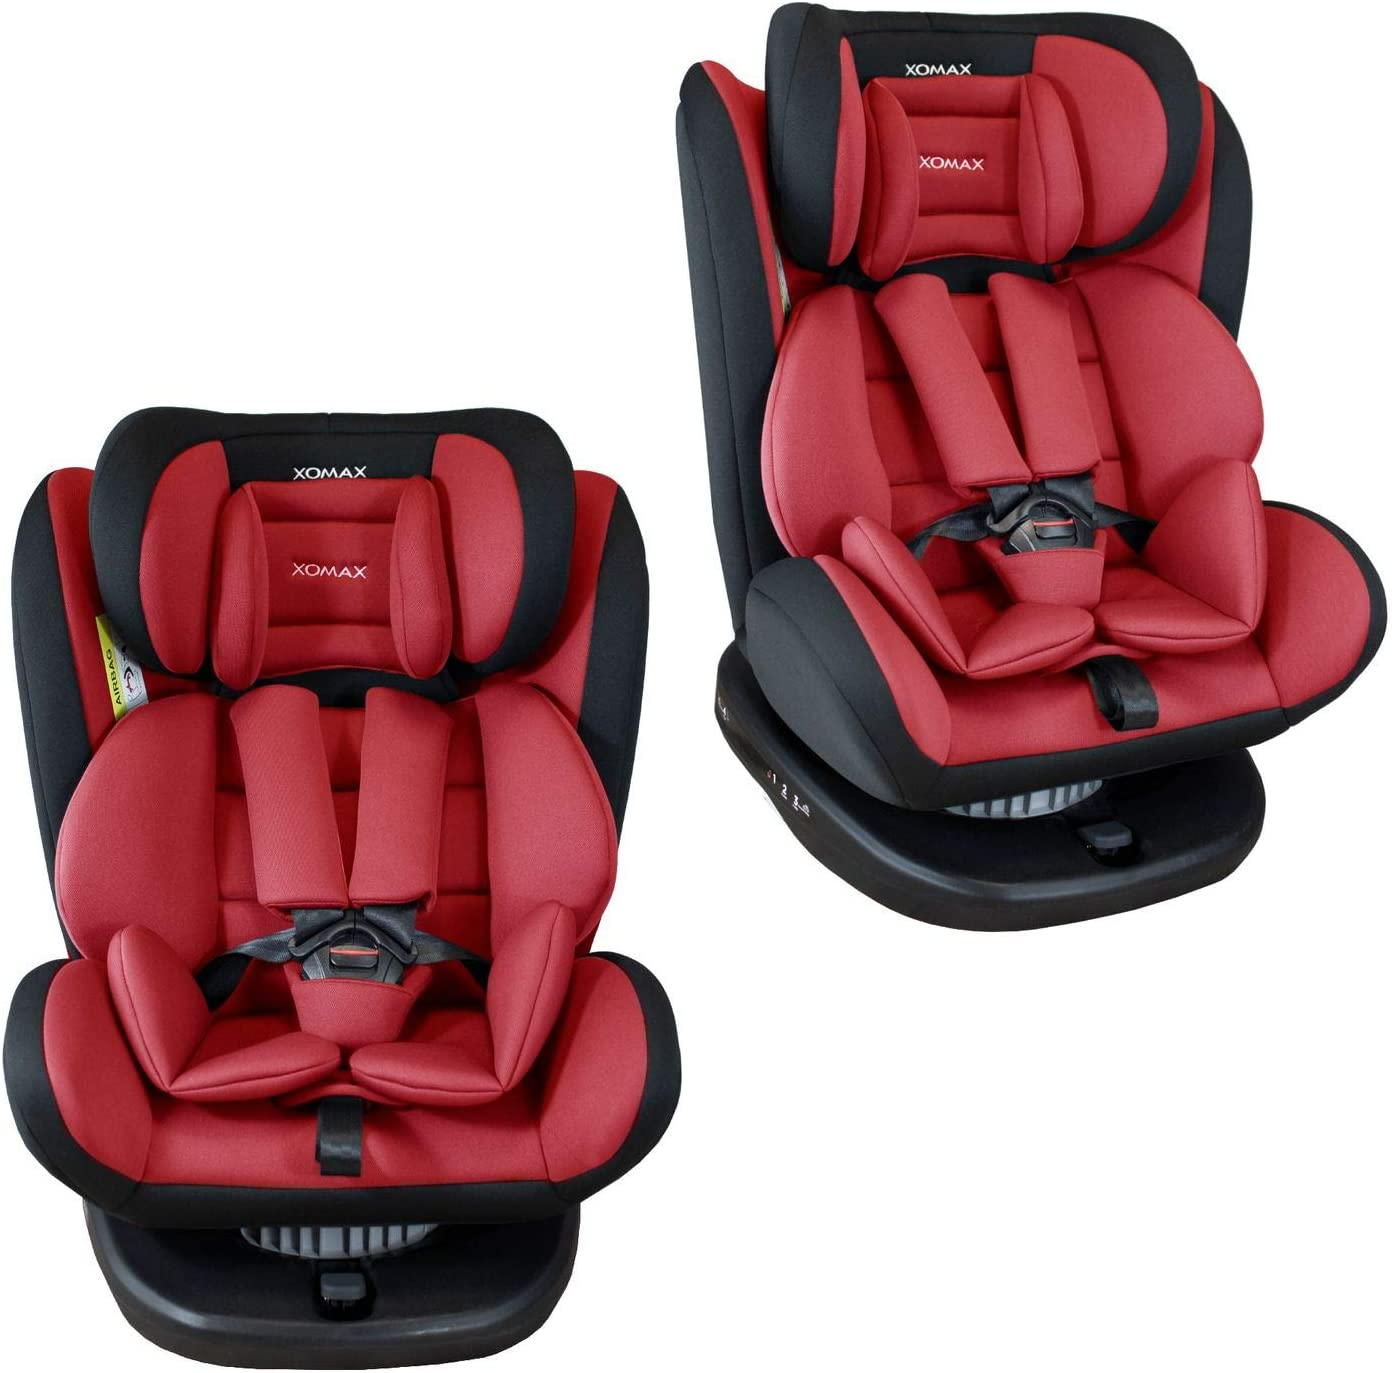 1-12 years washable I ECE R44//04 group 0//1//2//3 I 5-point harness and 3-point harness I cover removable XOMAX 916 Child car seat with 360/° rotation /& ISOFIX I growing with your child I 0-36 kg